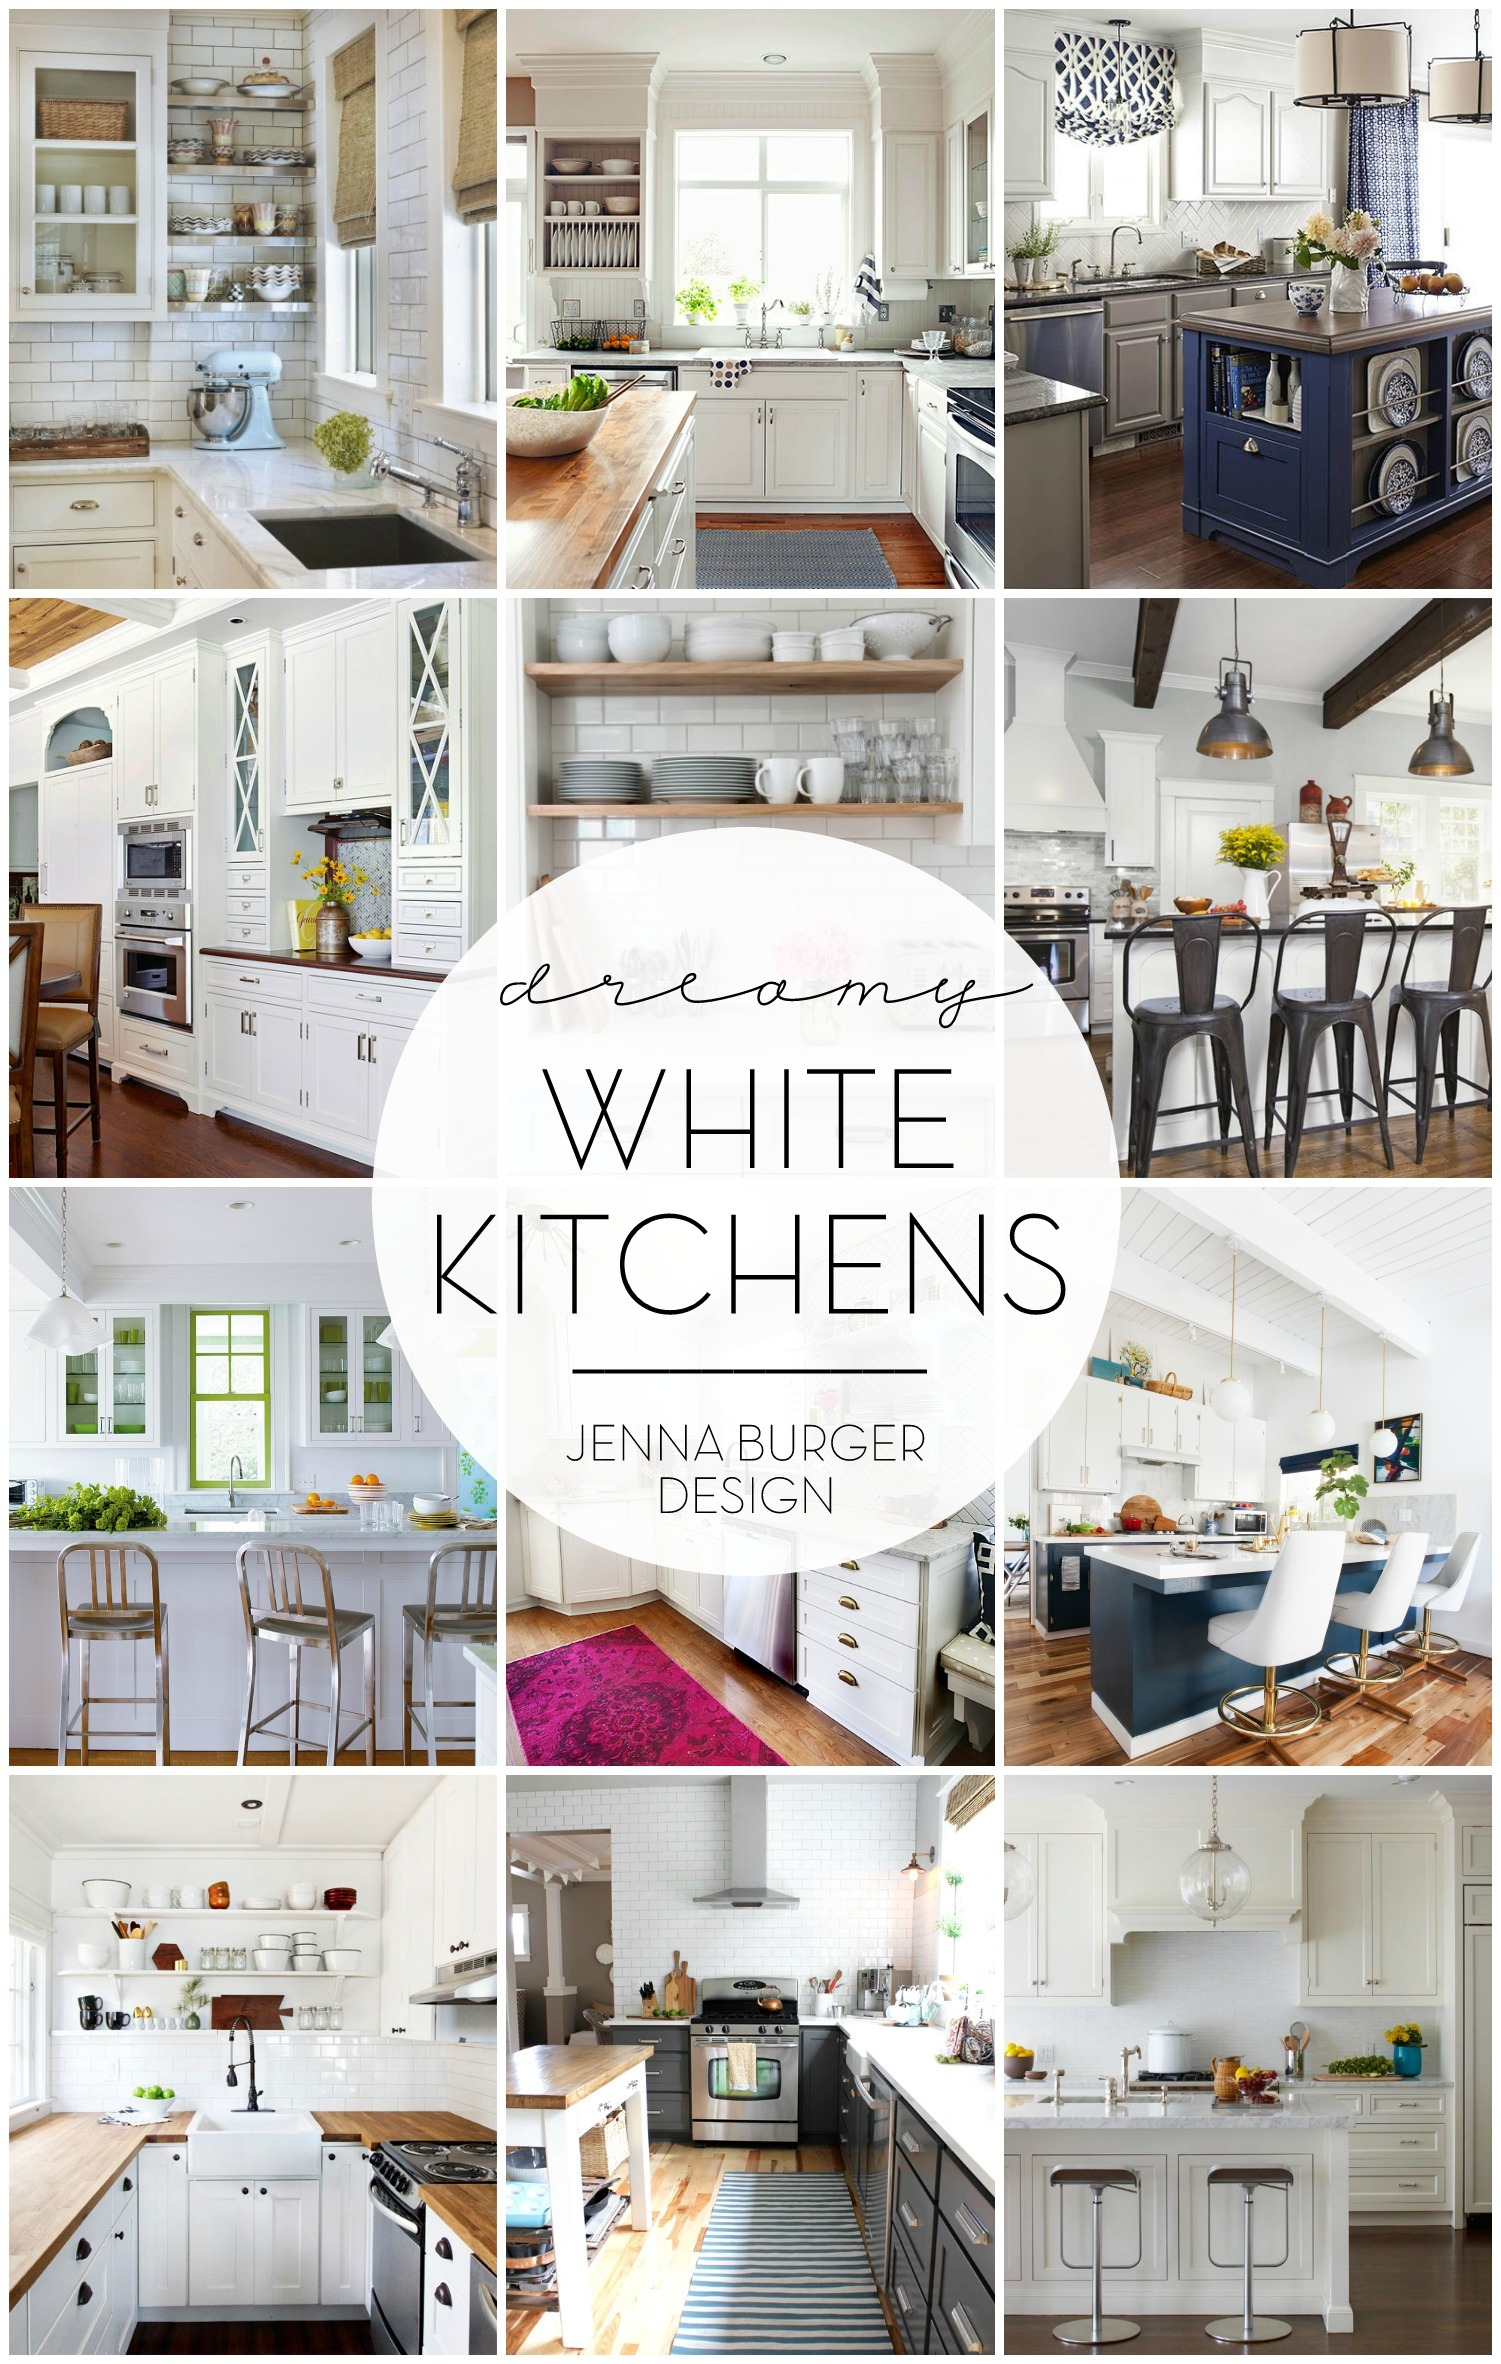 Wonderful White Kitchens - Jenna Burger